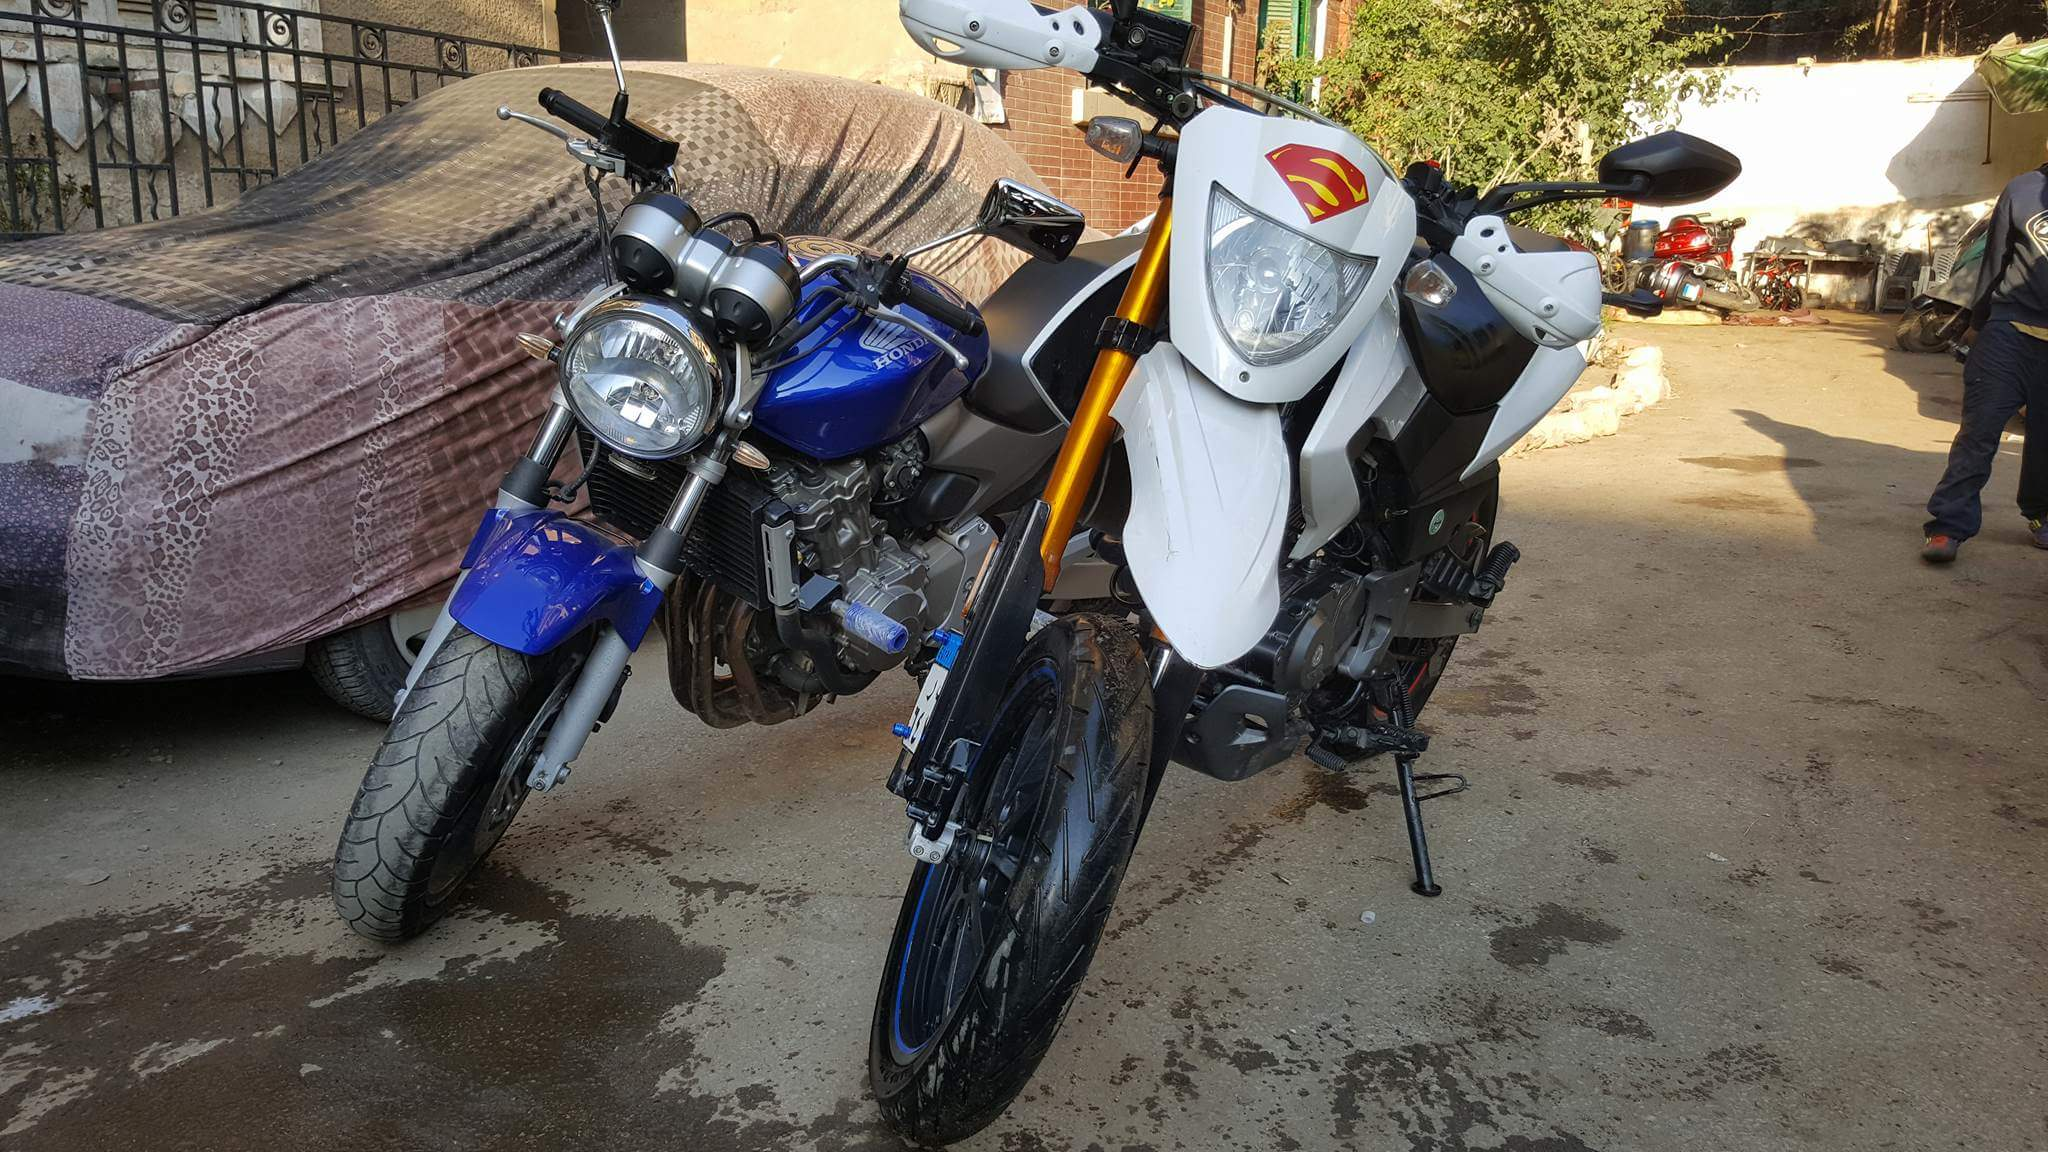 For Sale - BENELLI Vlx 150 (2015) - 8500 EGP